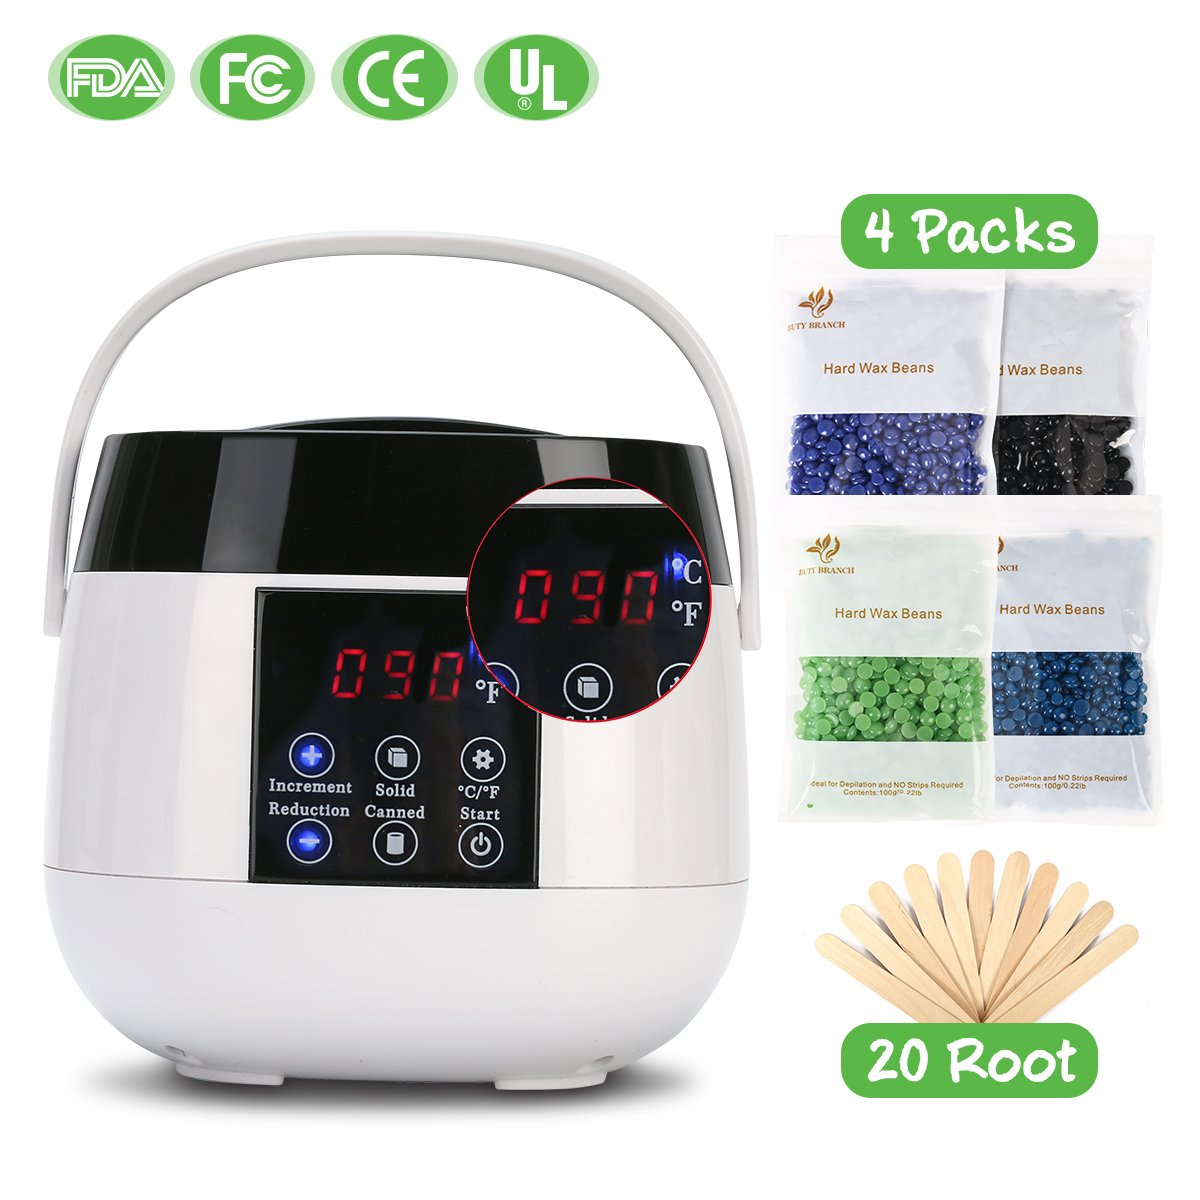 SUNCOM Wax Warmer, Portable Waxing Hair Removal Kit with LCD Digital Screen & Memory Function Electric Wax Pot Heater for Arm, Leg and Bikini Area, 4 Scents Hard Wax Beans+20 Wax Applicator Sticks